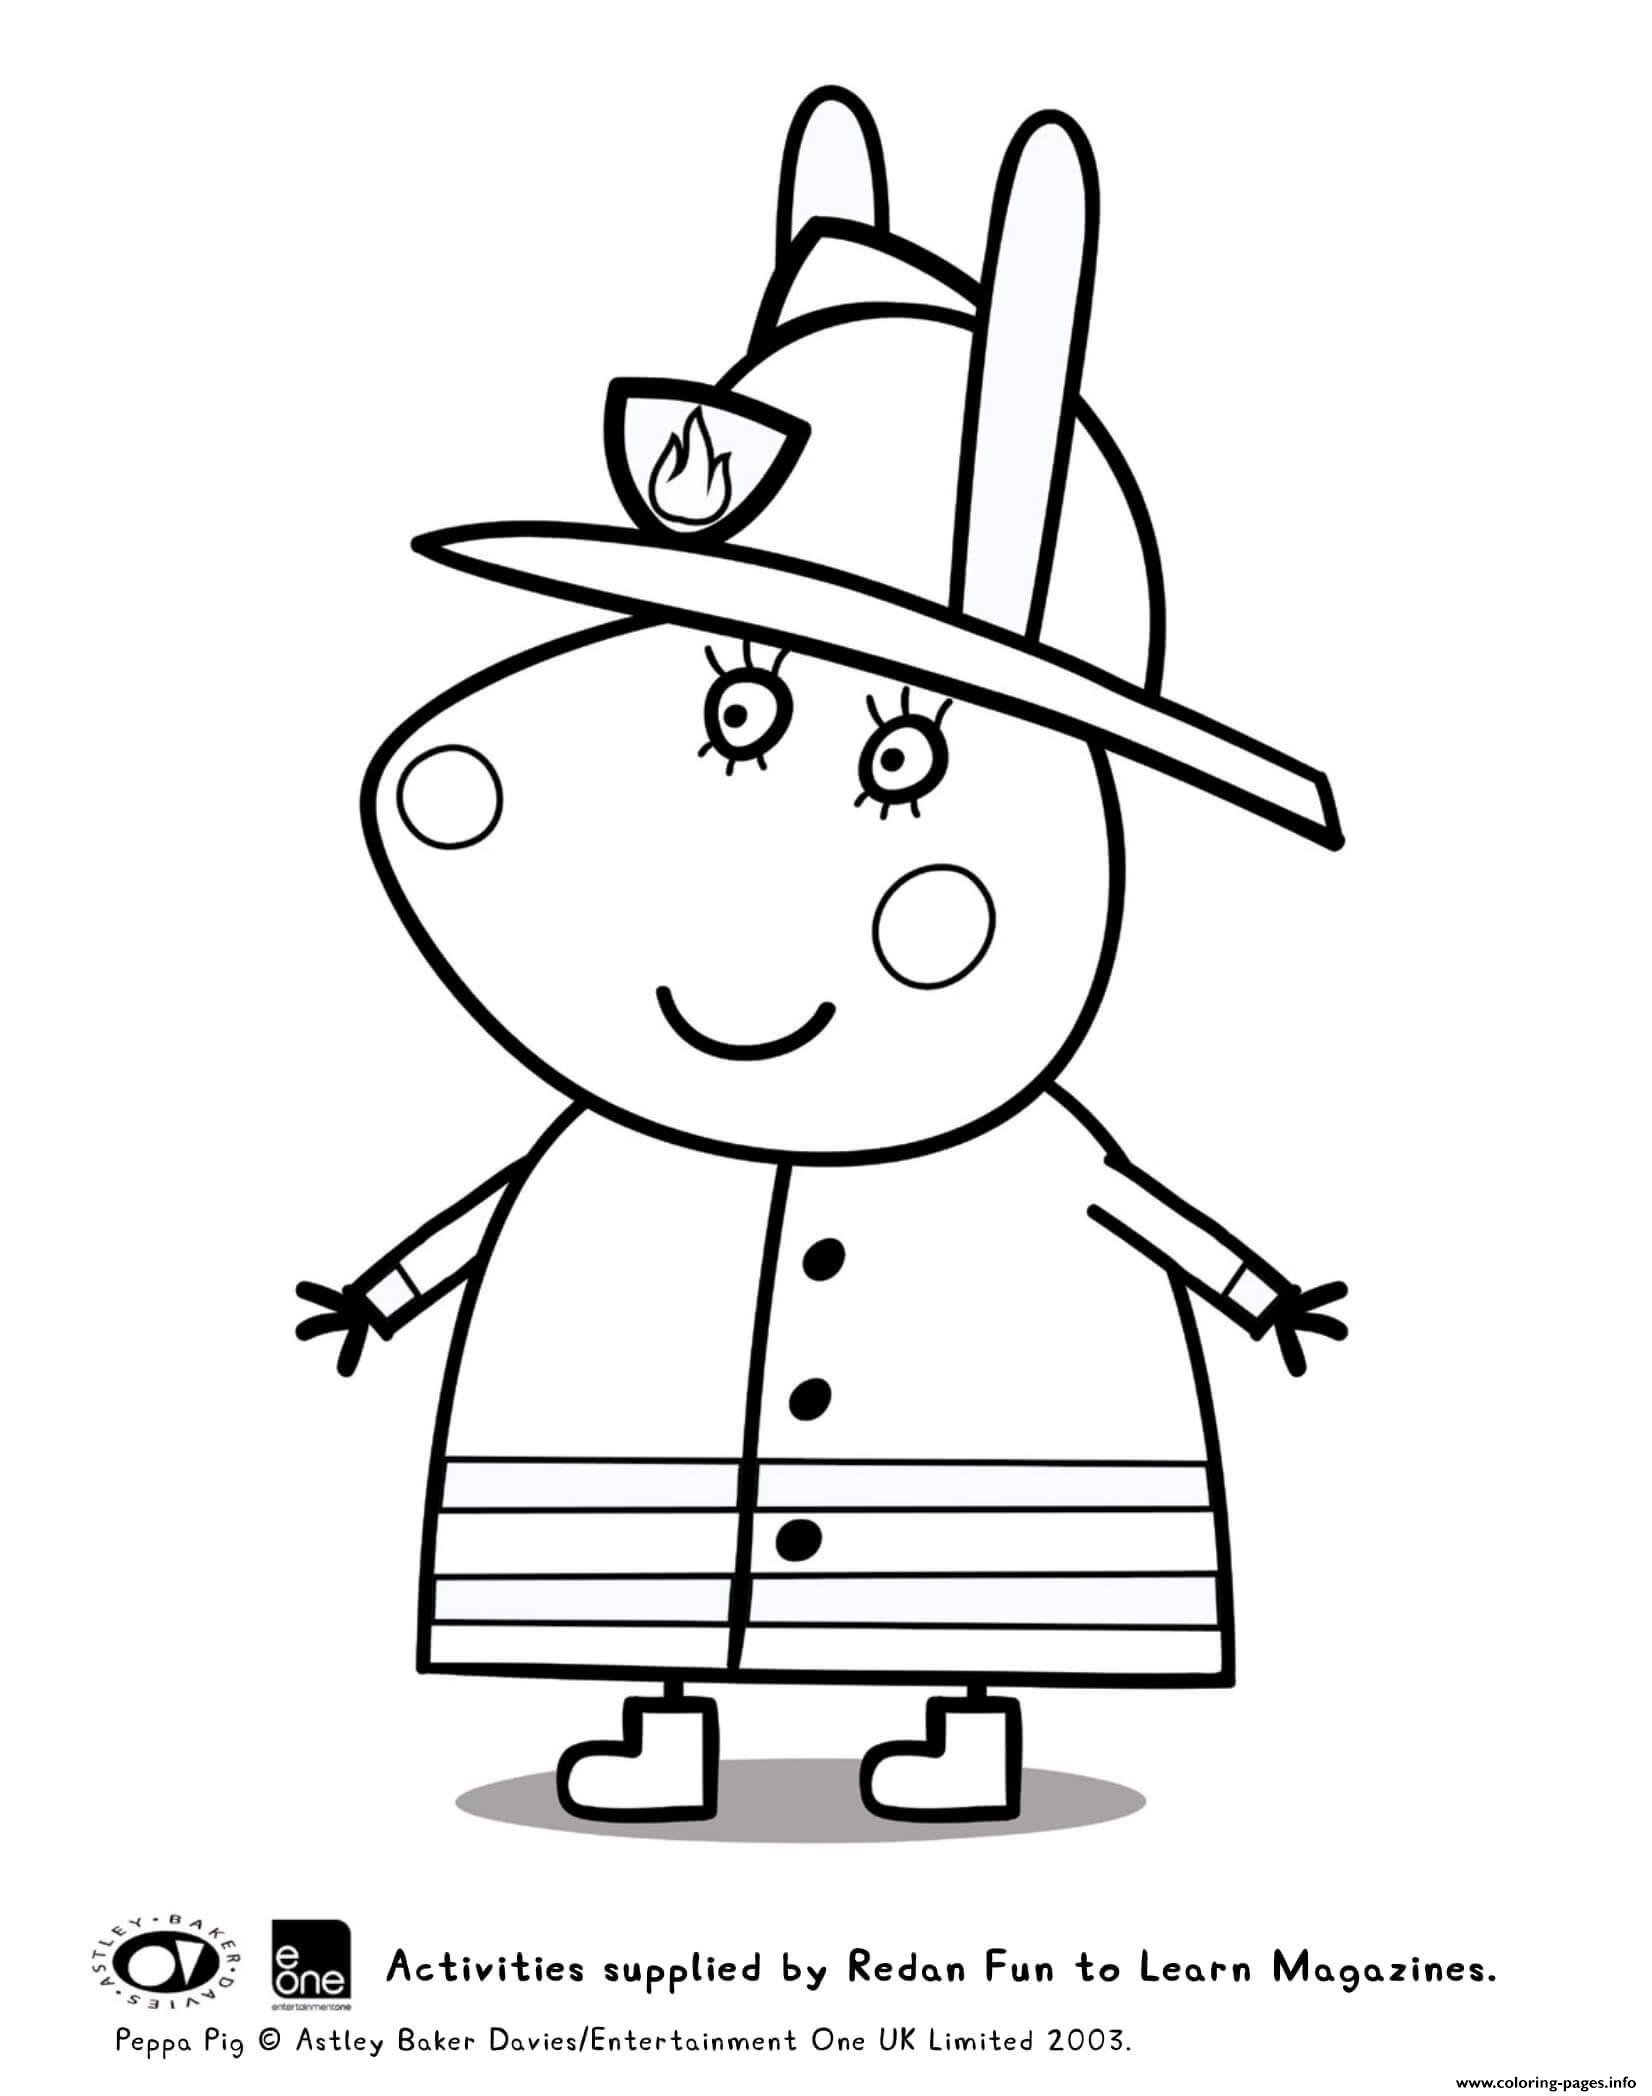 Miss Rabbit Peppa Pig coloring pages